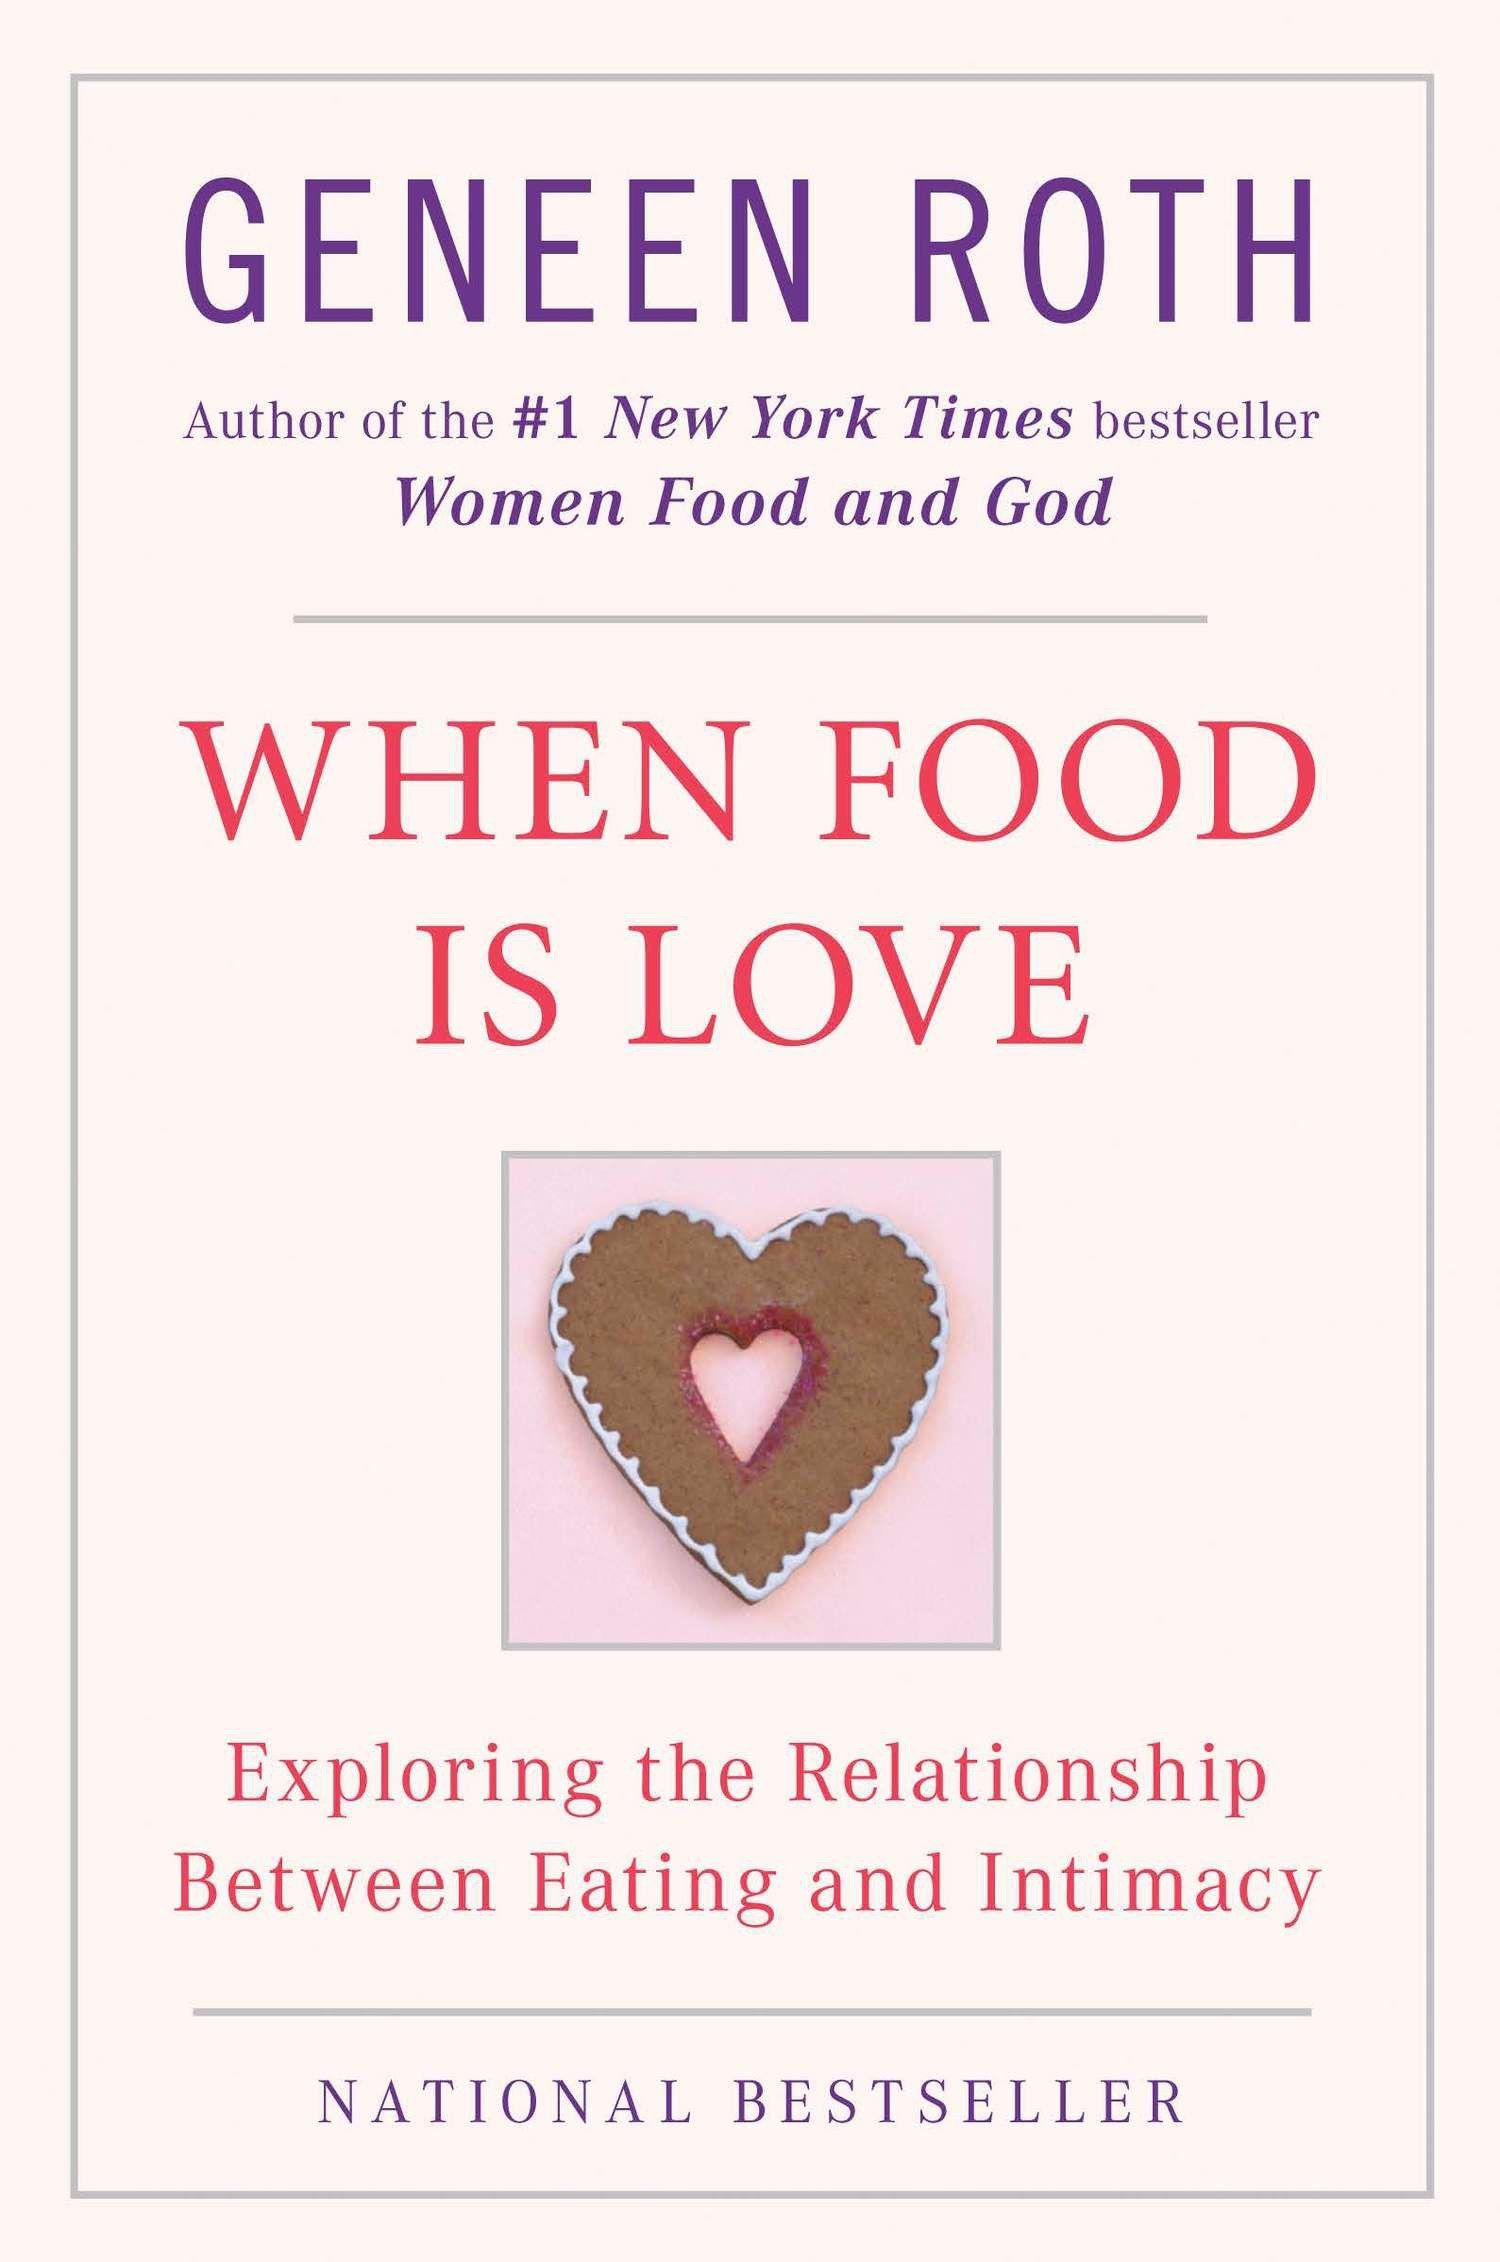 The story of a woman who ate the heart of her lover